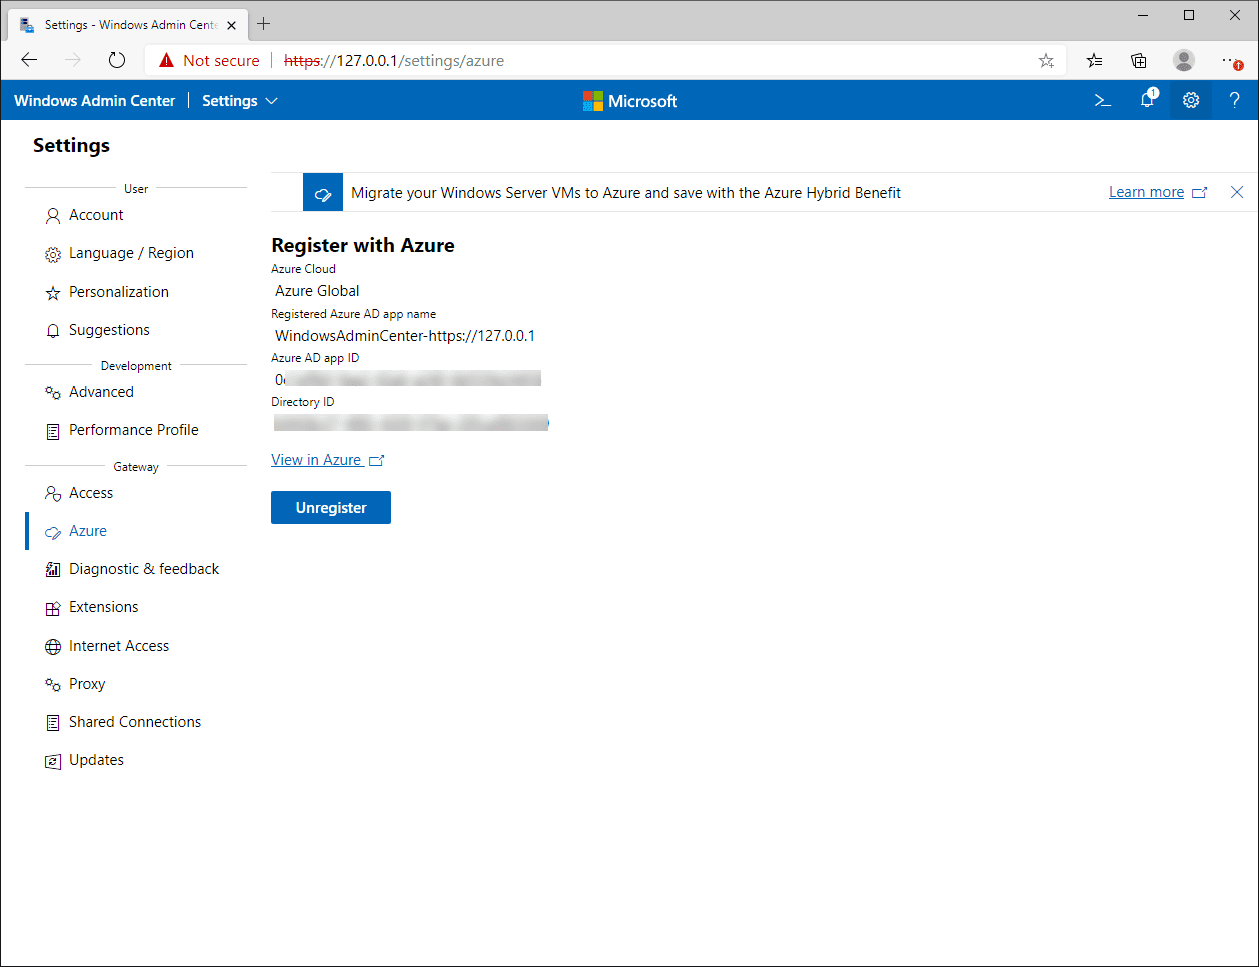 Windows Admin Center is registered with Azure